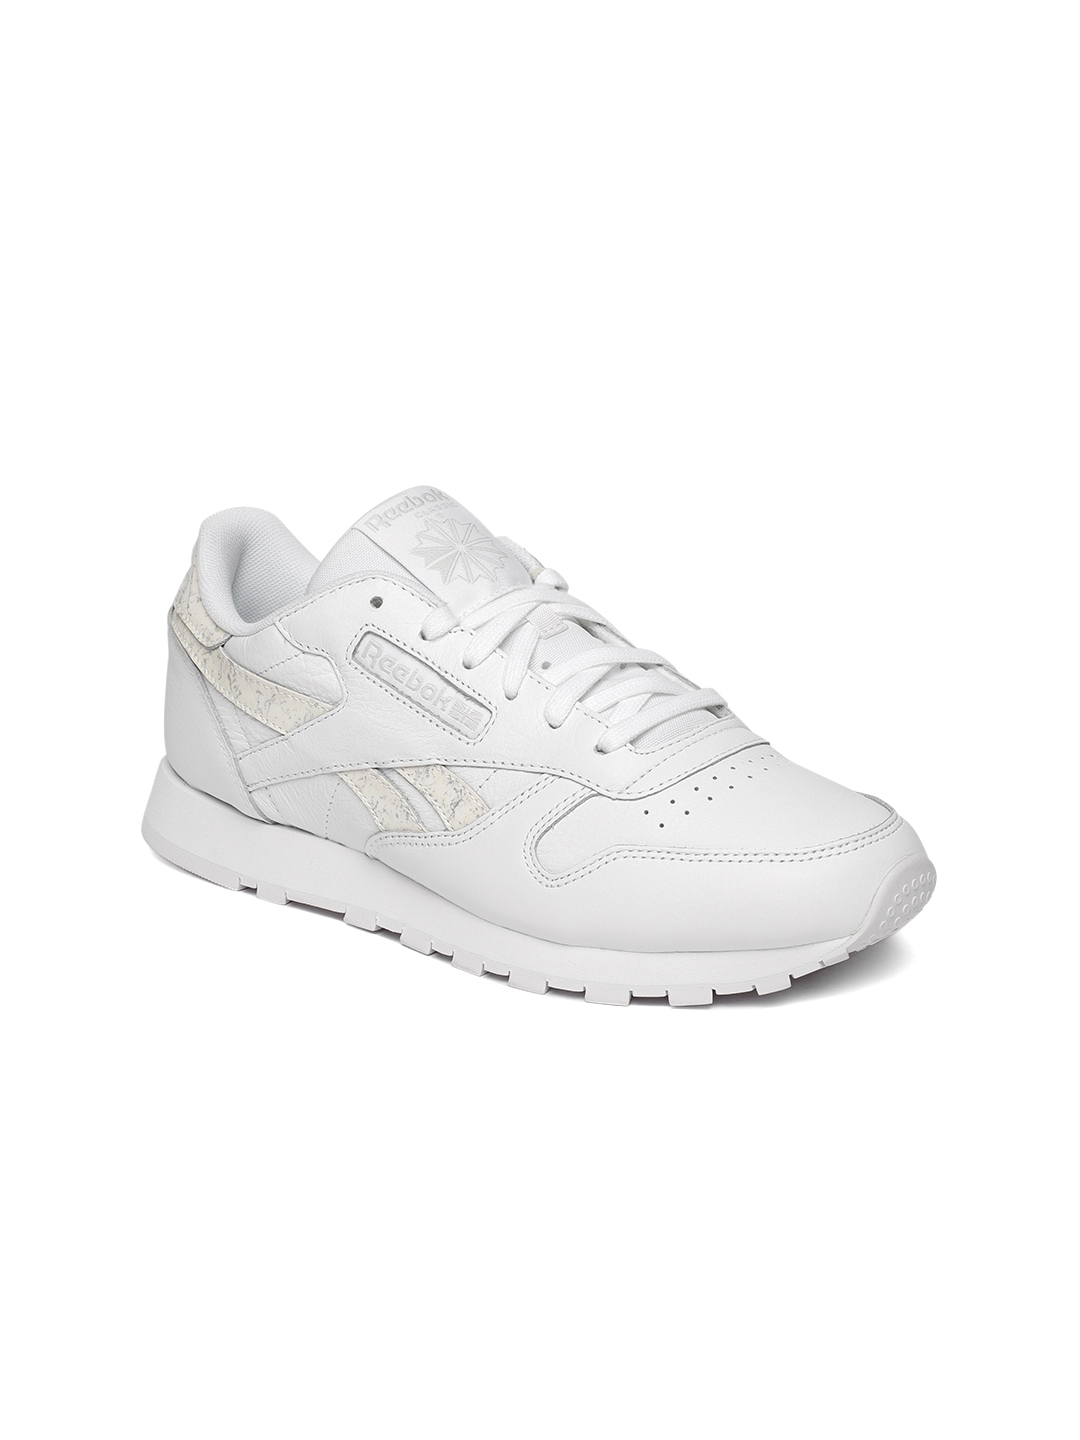 f80c8b29181ca0 Buy Reebok Classic Leather Women White Sneakers - Casual Shoes for ...